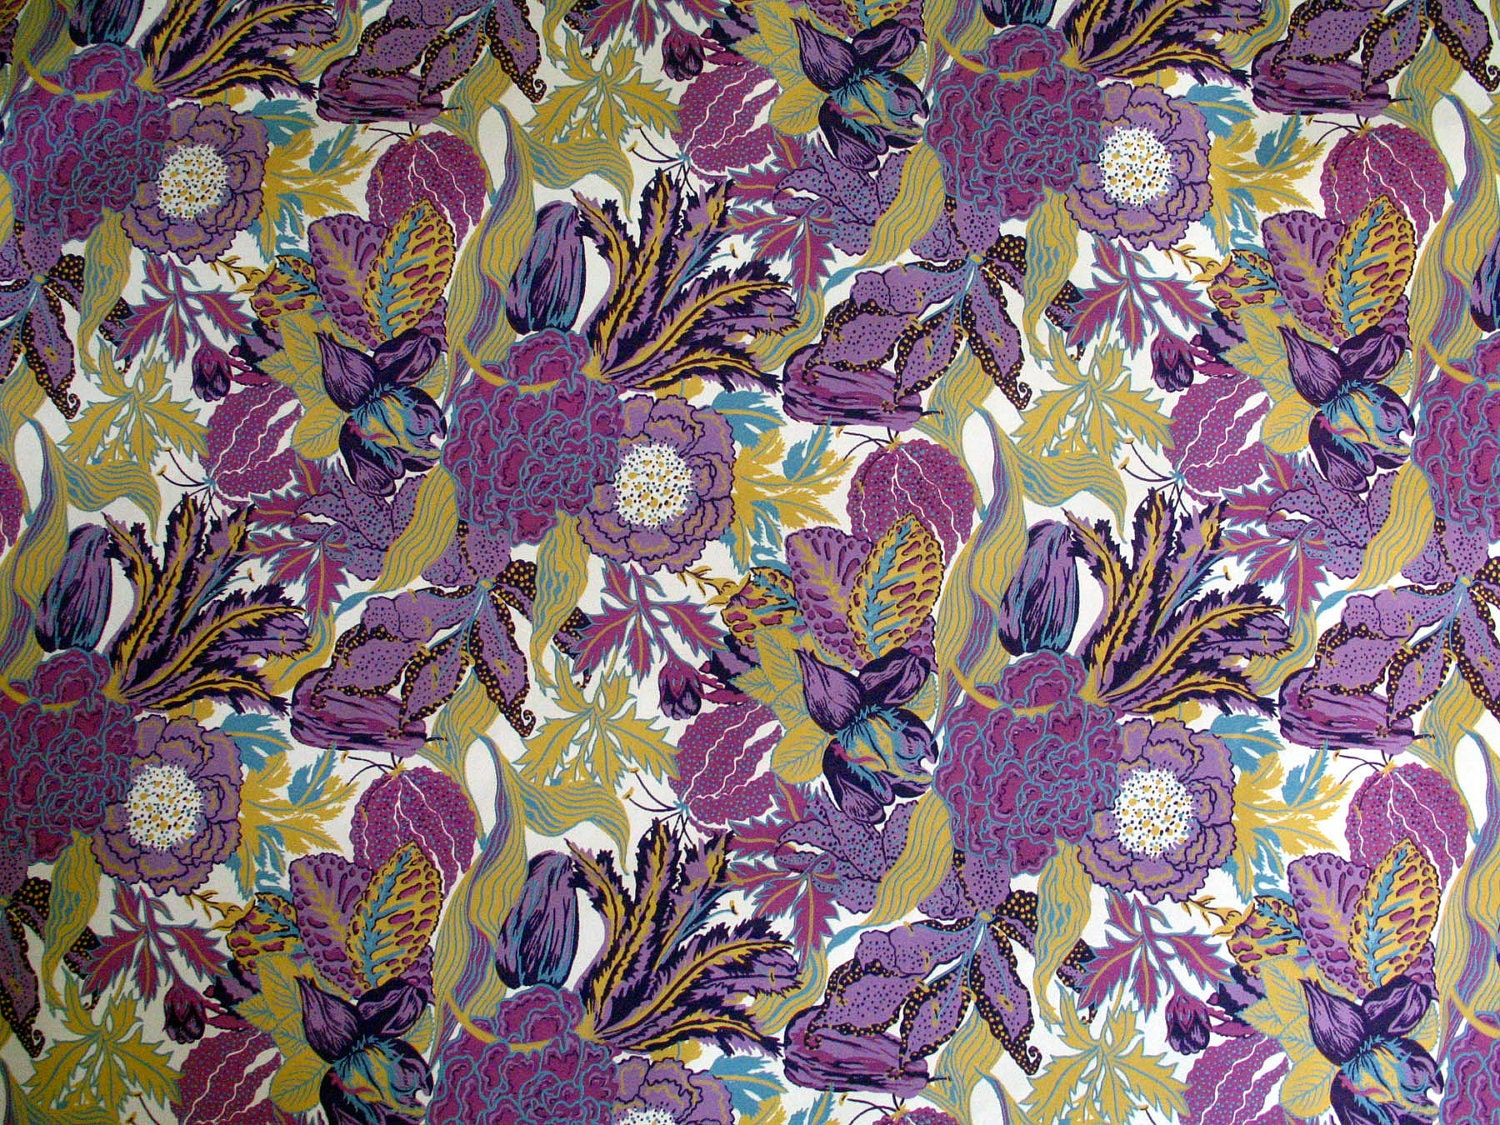 Purple vintage floral pattern - photo#11